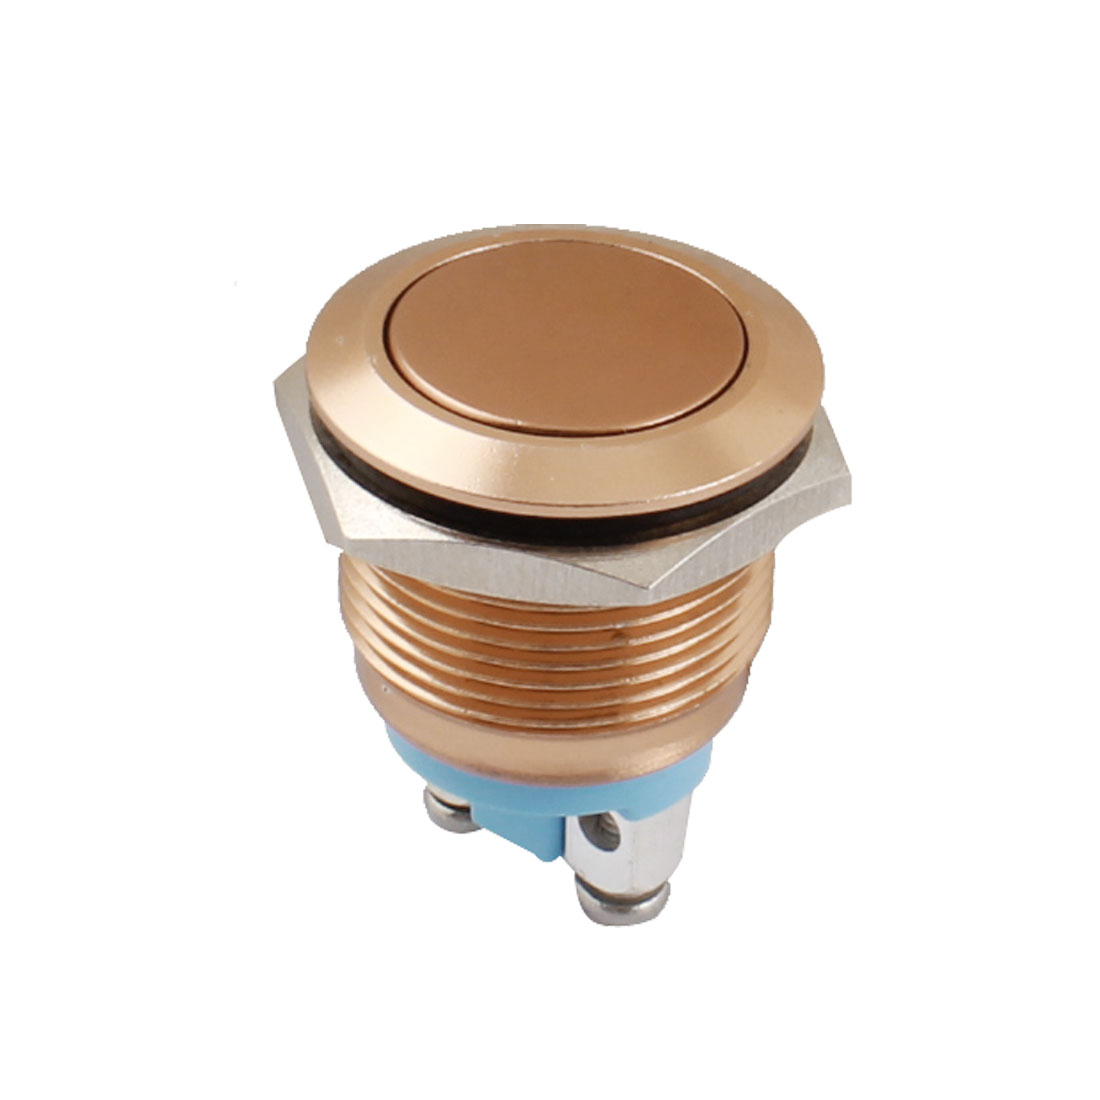 AC250V 5A 19mm Thread Panel Mount SPST 2-Terminal Normal Open Momentary Metal Pushbutton Switch Copper Tone